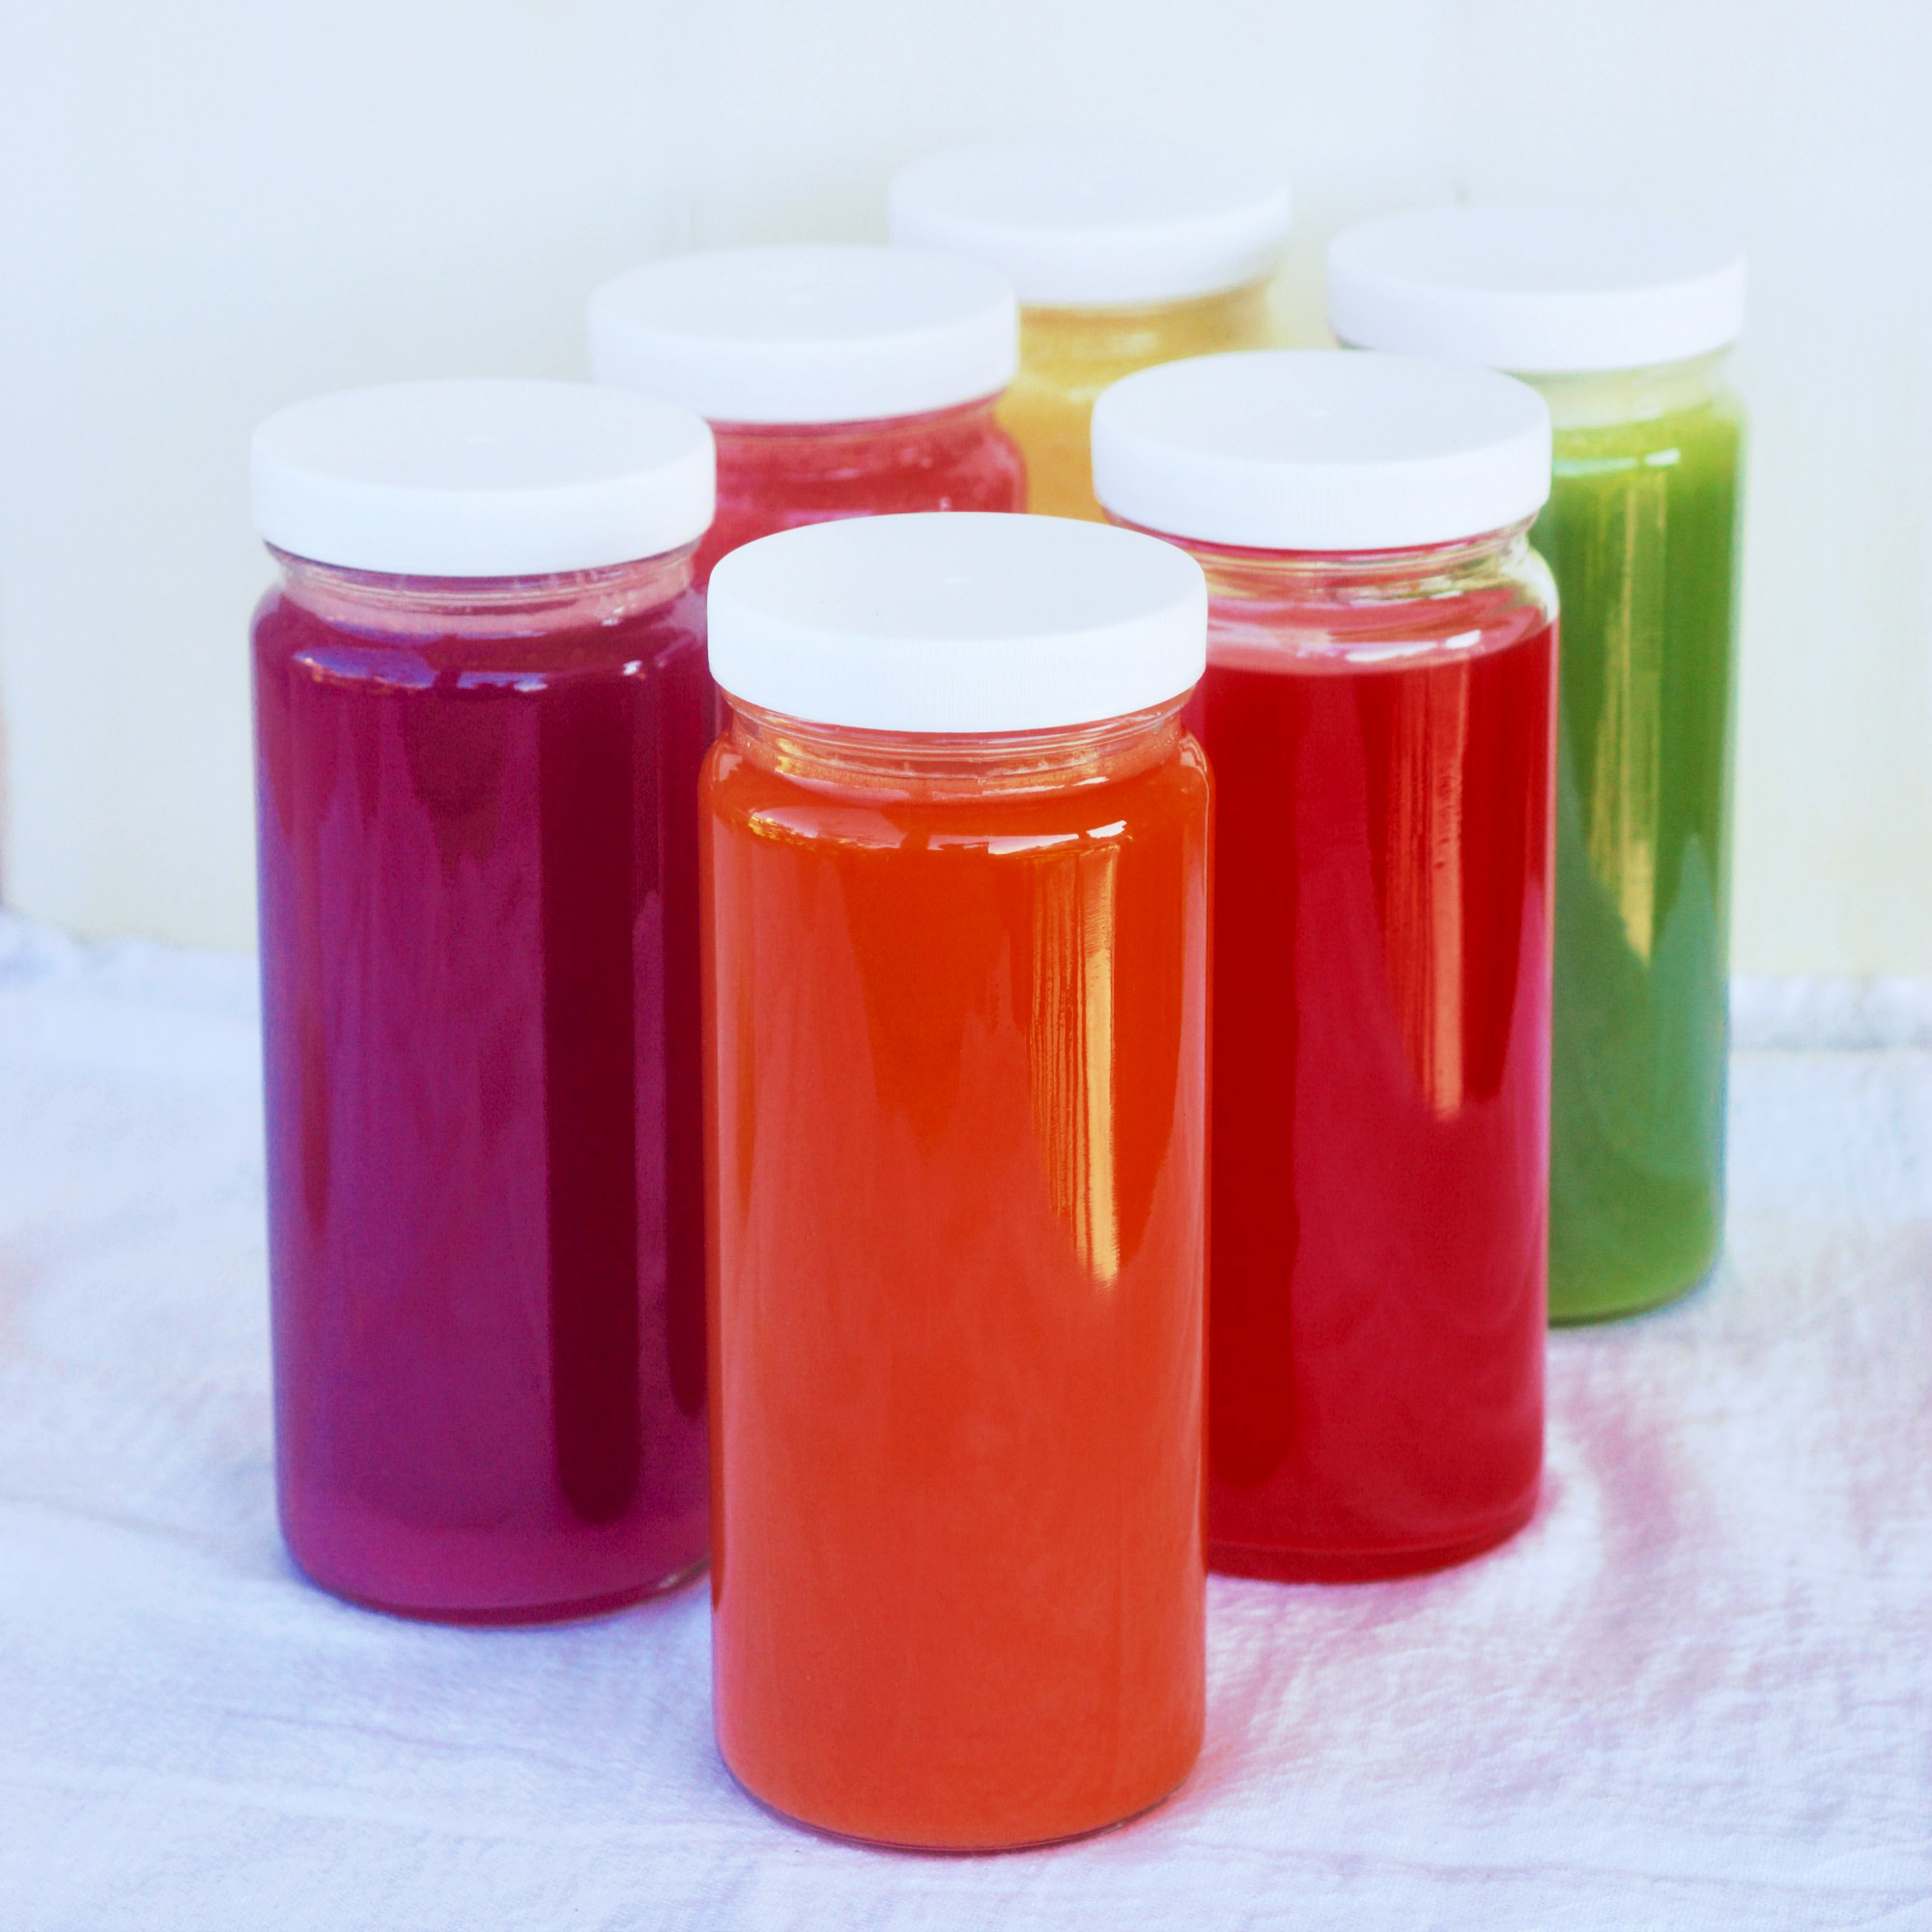 juice and smoothie bottles